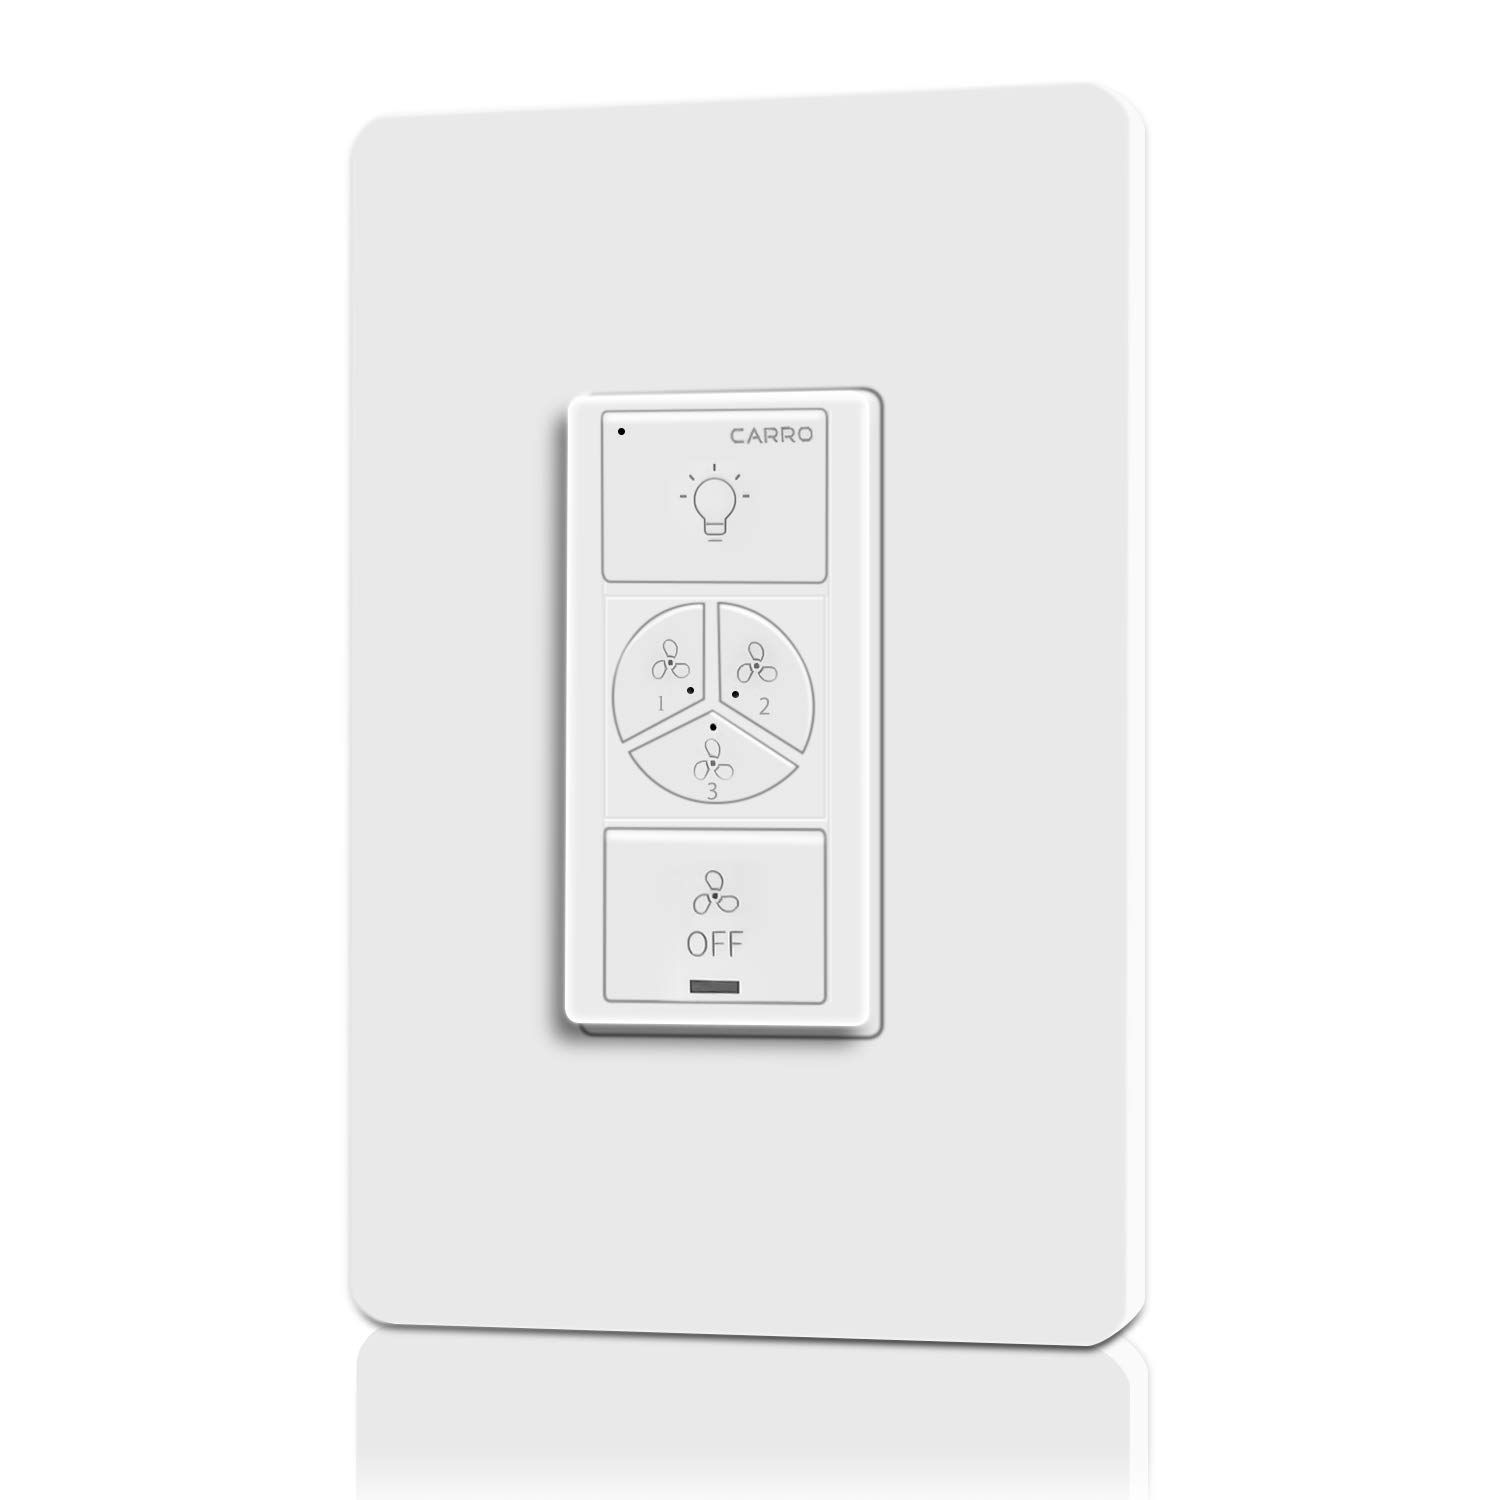 Smart Ceiling Fans Controller and Dimmer Light Wall Switch, Trifecte 1-GANG Light Switch & 3 Speed Fan Control, Compatible with Alexa/Google Home/Siri, Remote Control with App/Wi-Fi